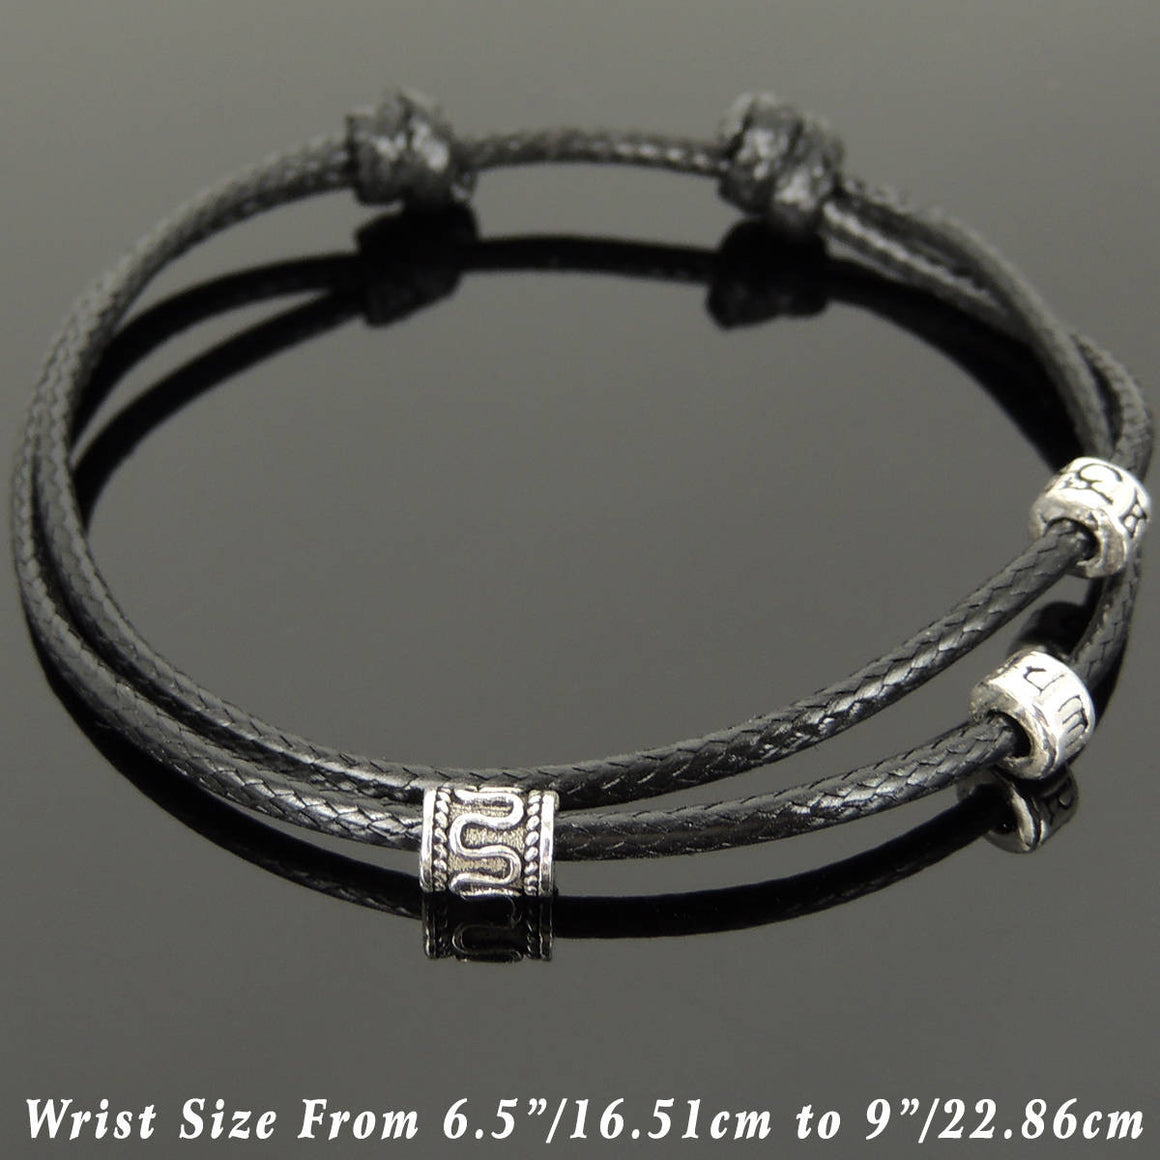 Adjustable Wax Rope Bracelet with S925 Sterling Silver Barrel & Meditation OM Beads - Handmade by Gem & Silver BR1114